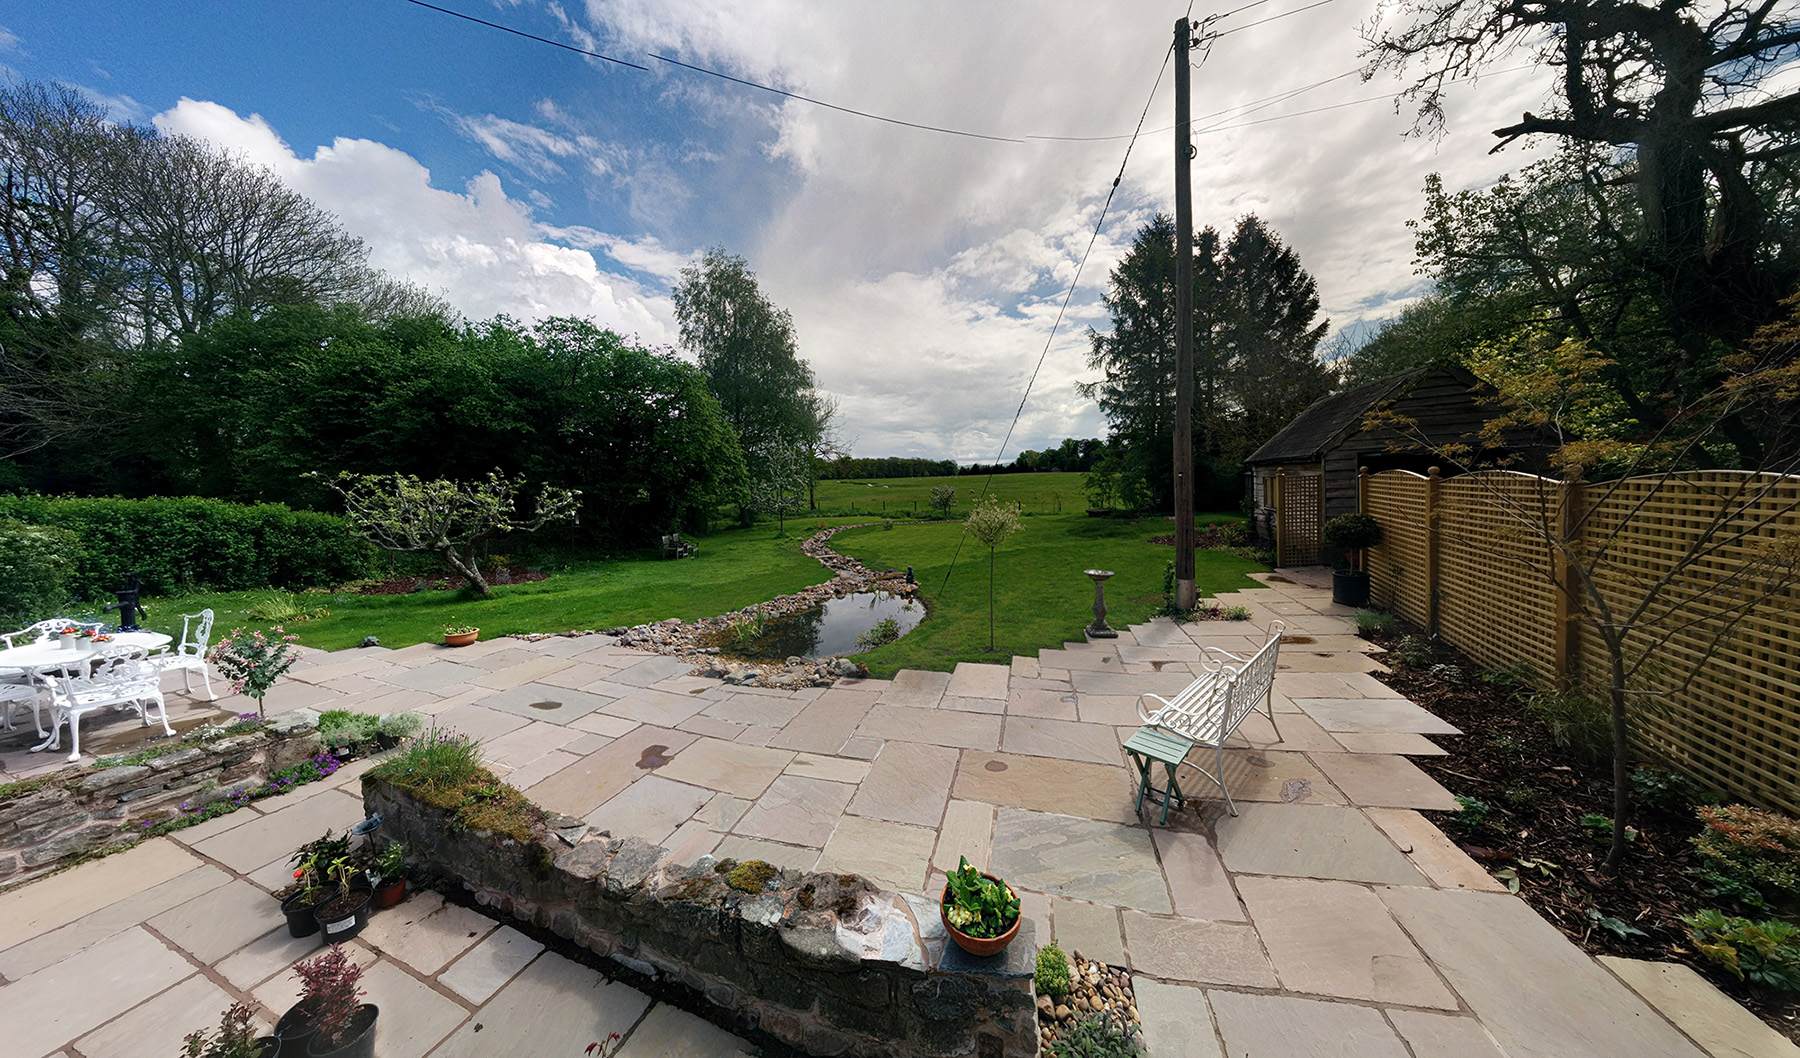 HerefordshireLandscapeGardenPatio